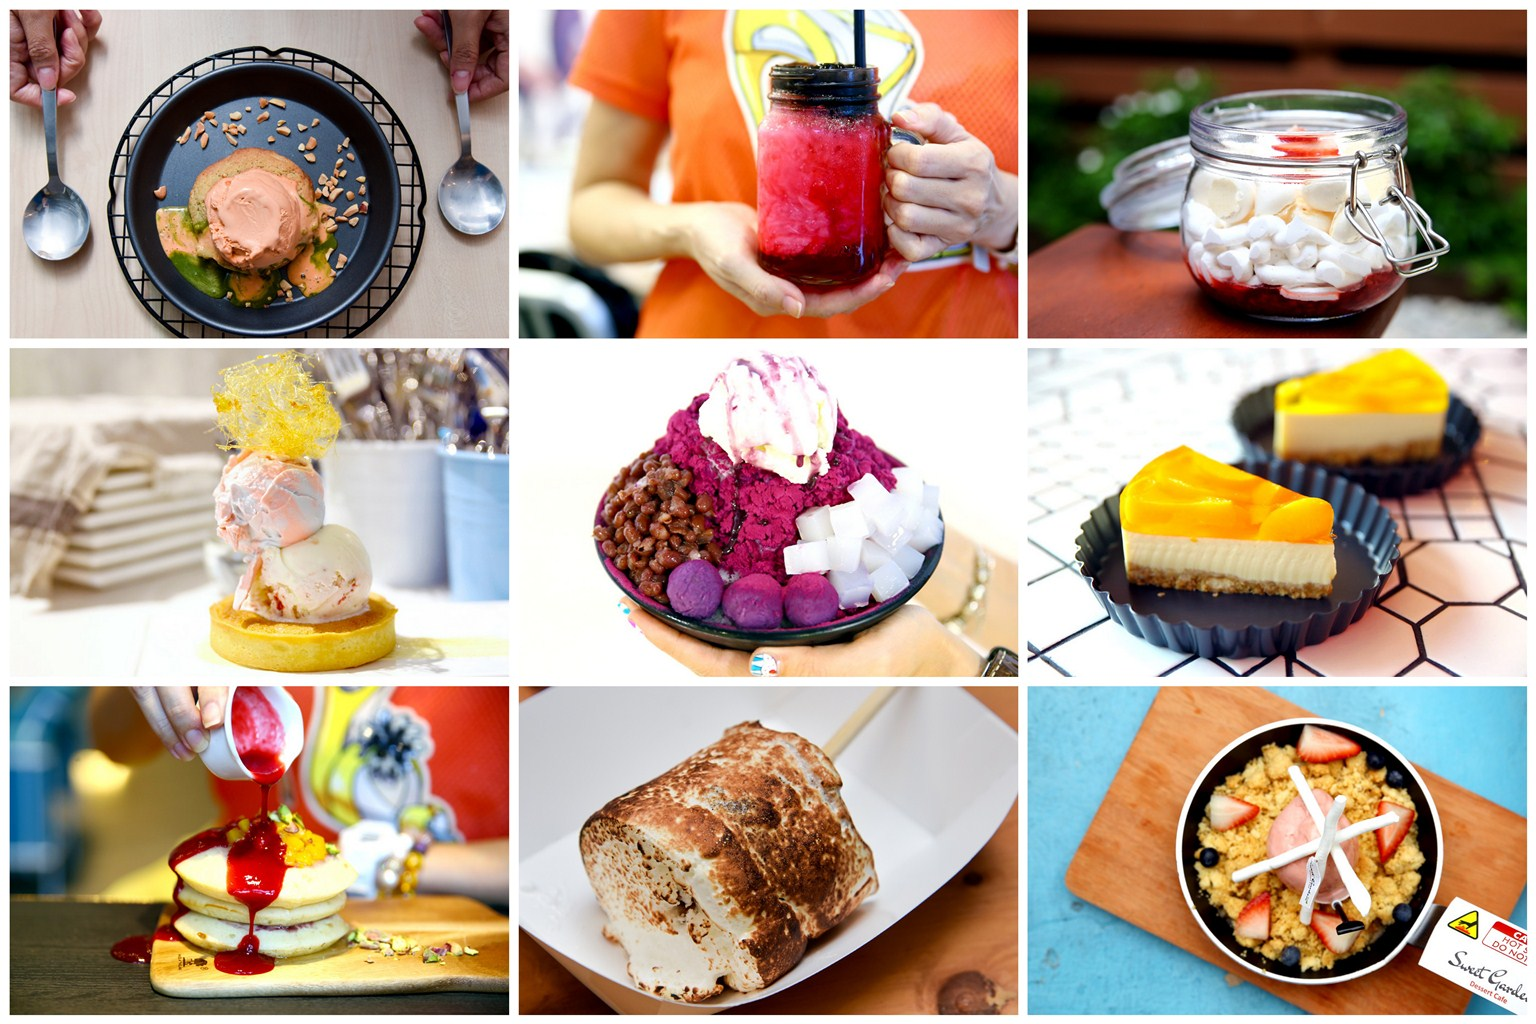 10 New Cafes In Singapore June 2016 - Many Many Dessert Cafes For More Sweetness In Your Life